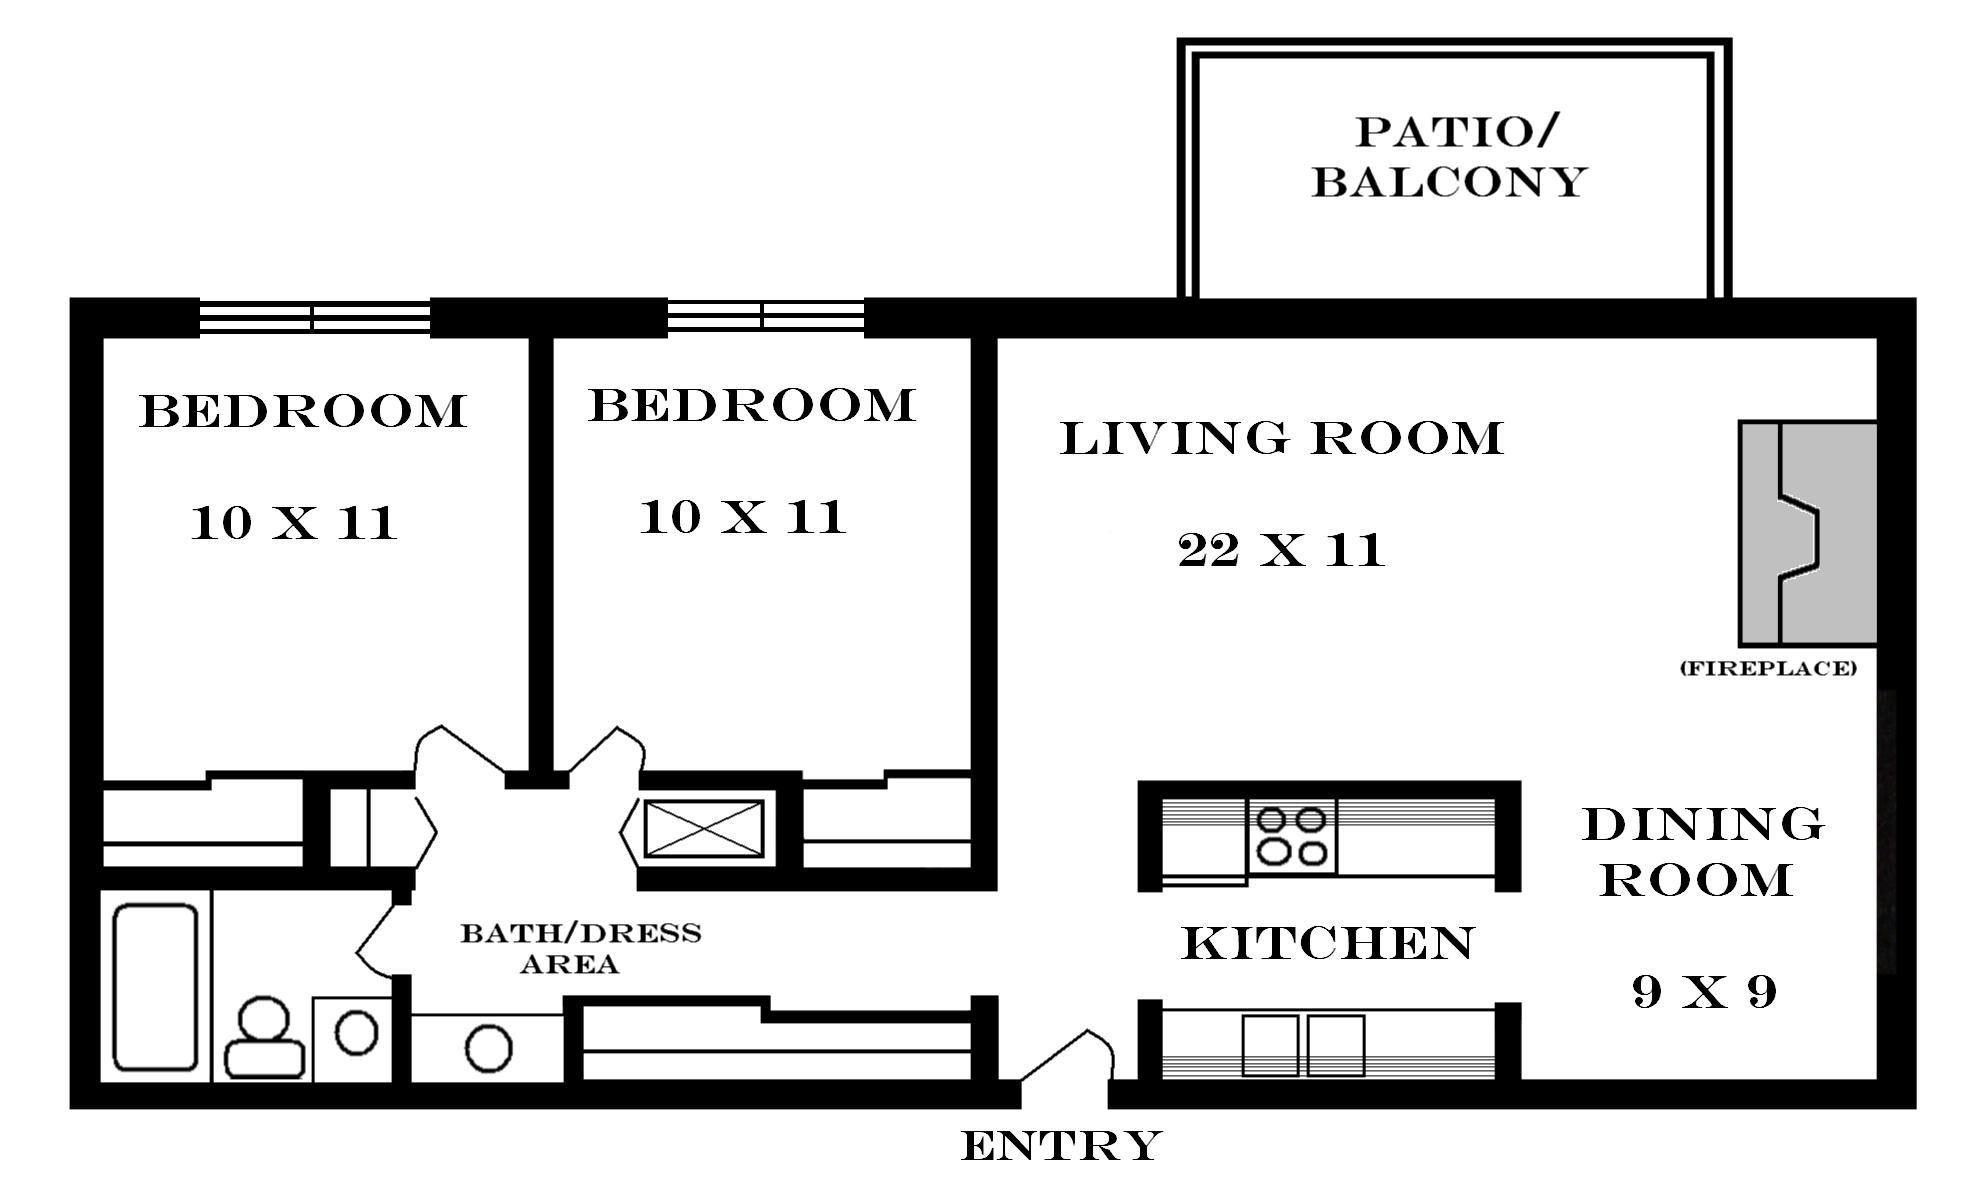 Small House Floor Plans 2 Bedrooms 900 Tiny Houses Pinterest Small House Floor Plans